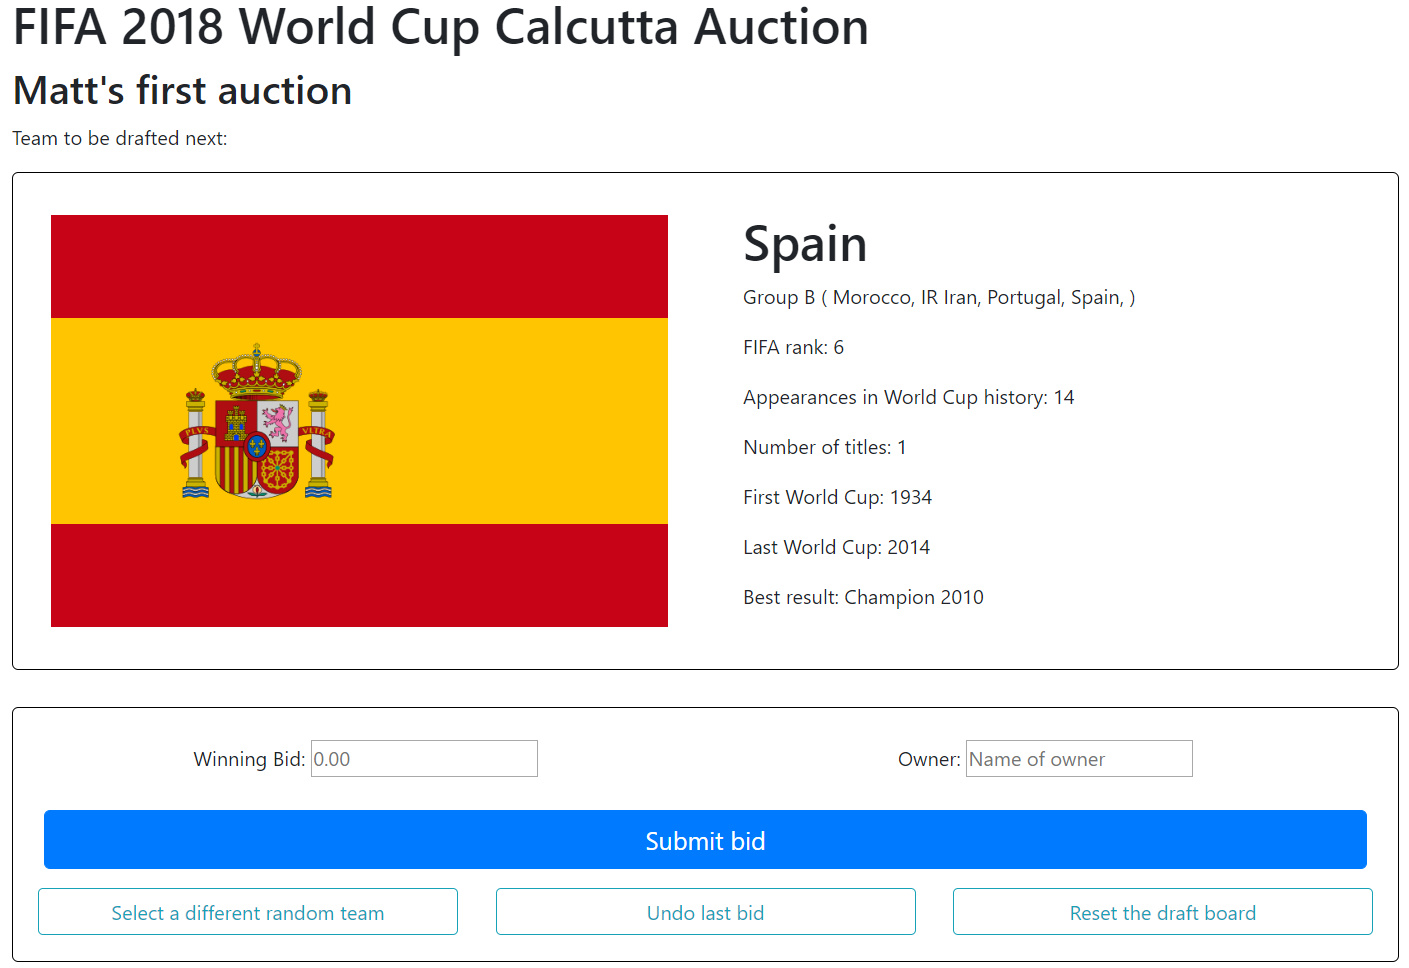 Calcutta Auction Spreadsheet Inside What Is A Calcutta Auction  Calcutta Champion: Host Fifa World Cup